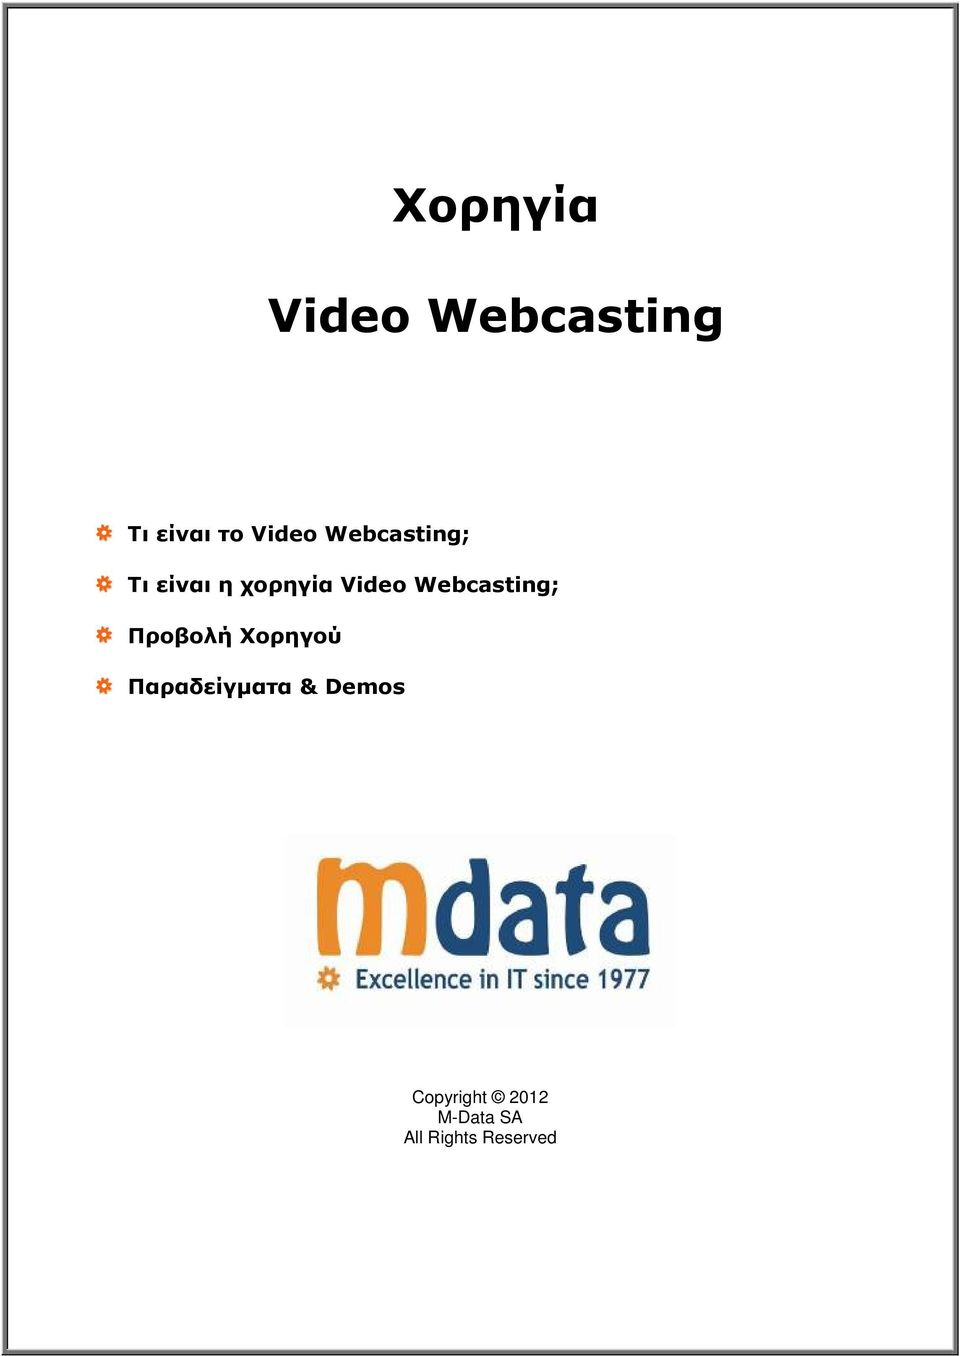 Webcasting; Προβολή Χορηγού Παραδείγματα &